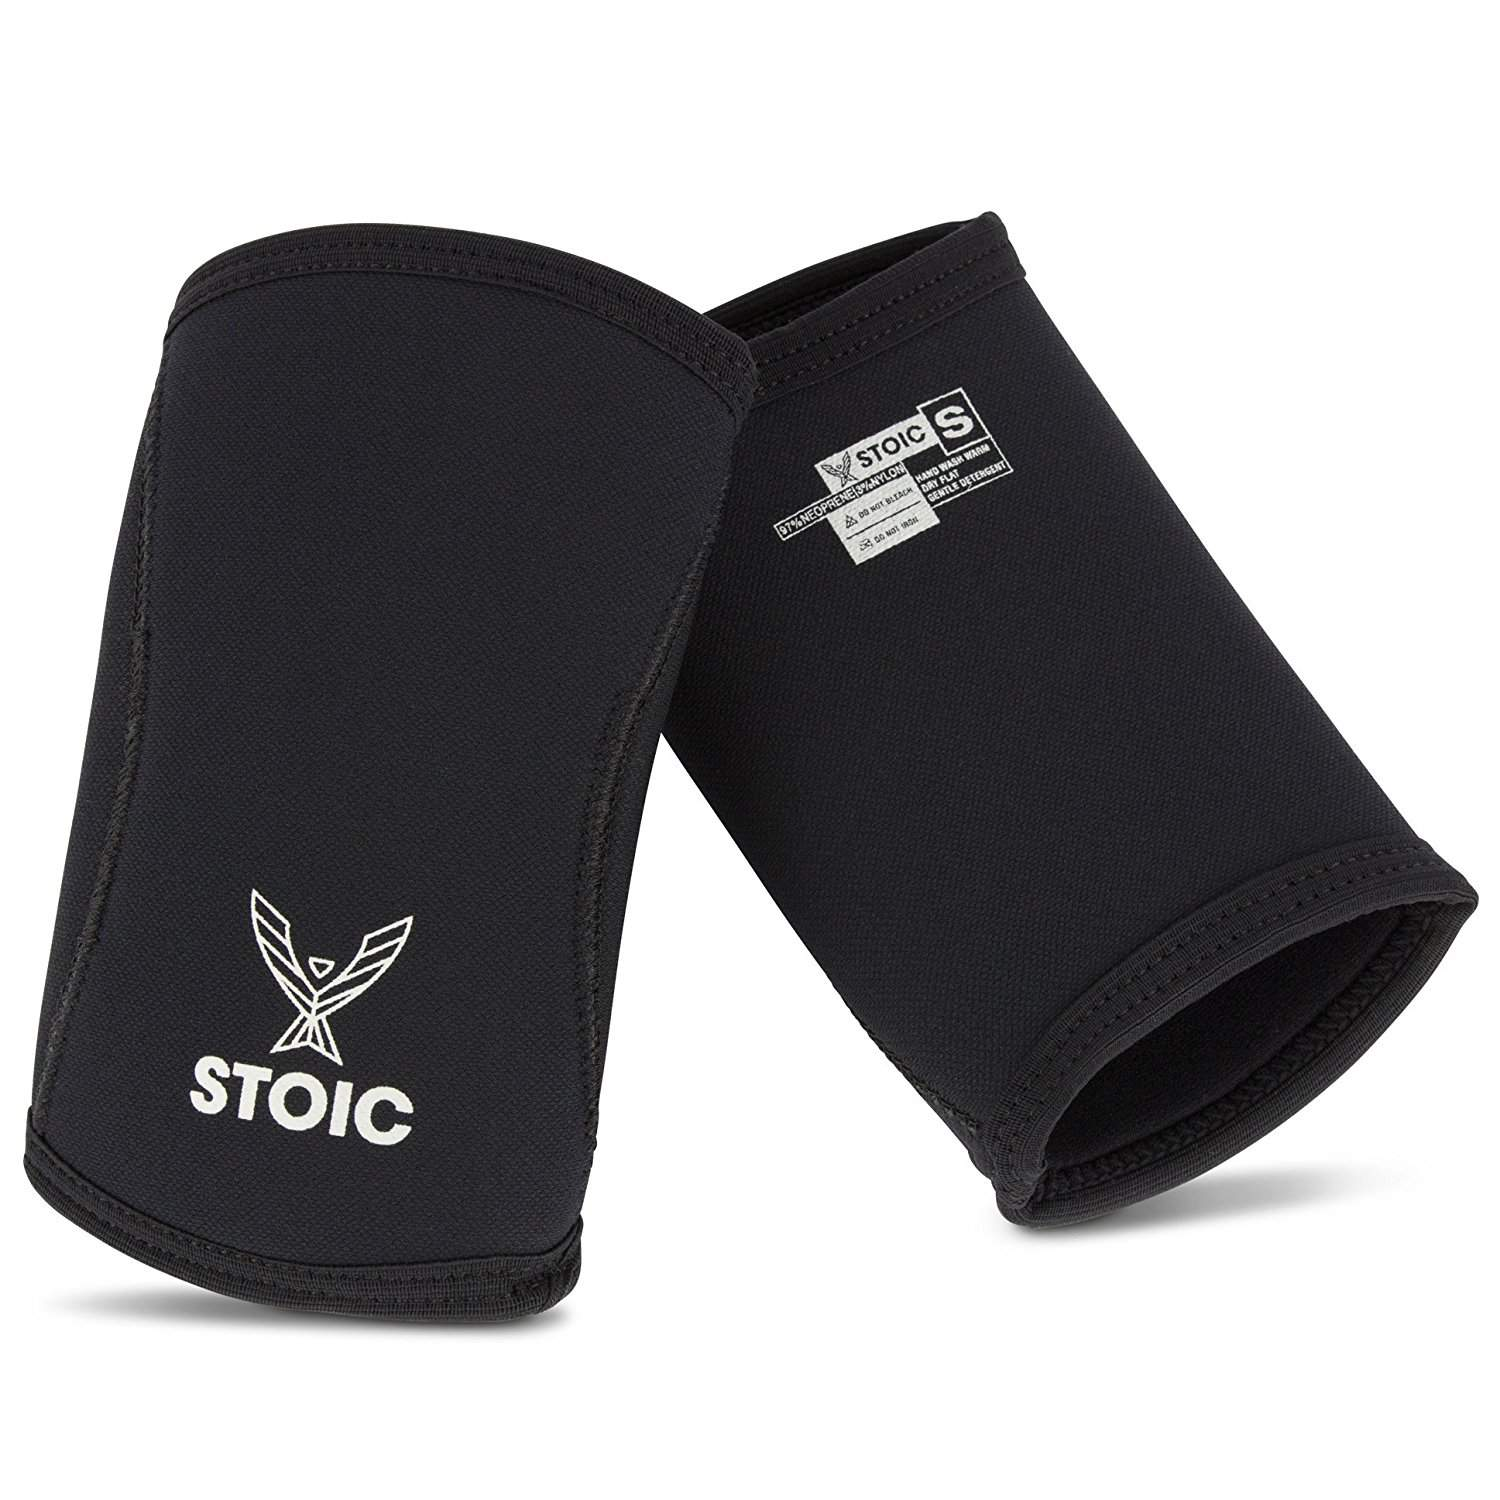 Stoic Elbow Sleeves for Powerlifting and Weightlifting